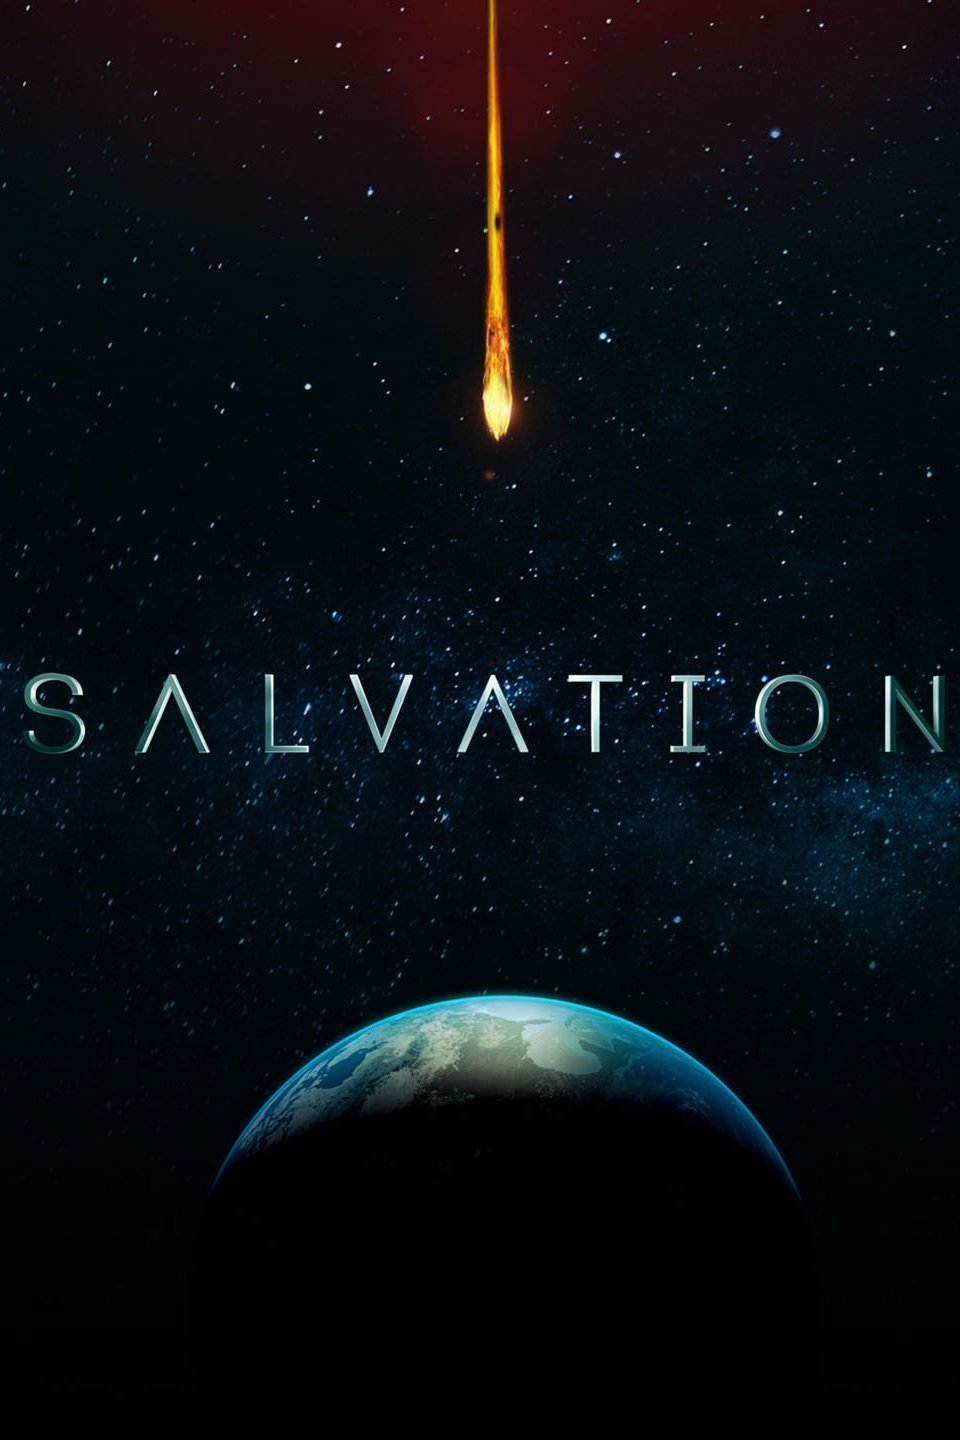 Salvation Season 2 Download HDTV (Episode 8 Added)